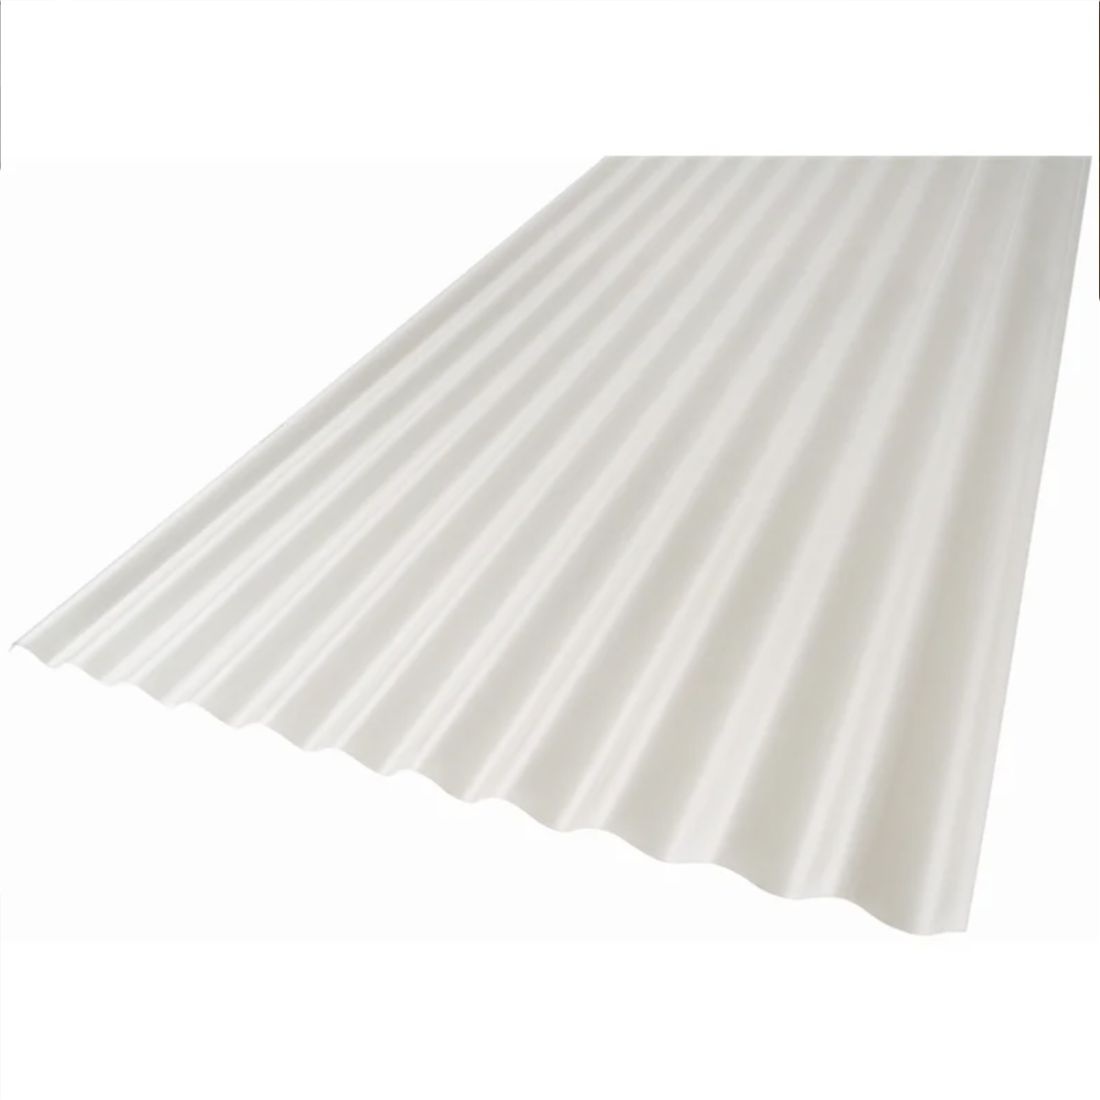 CoolTech Corrugated Ice 3600 x 860mm